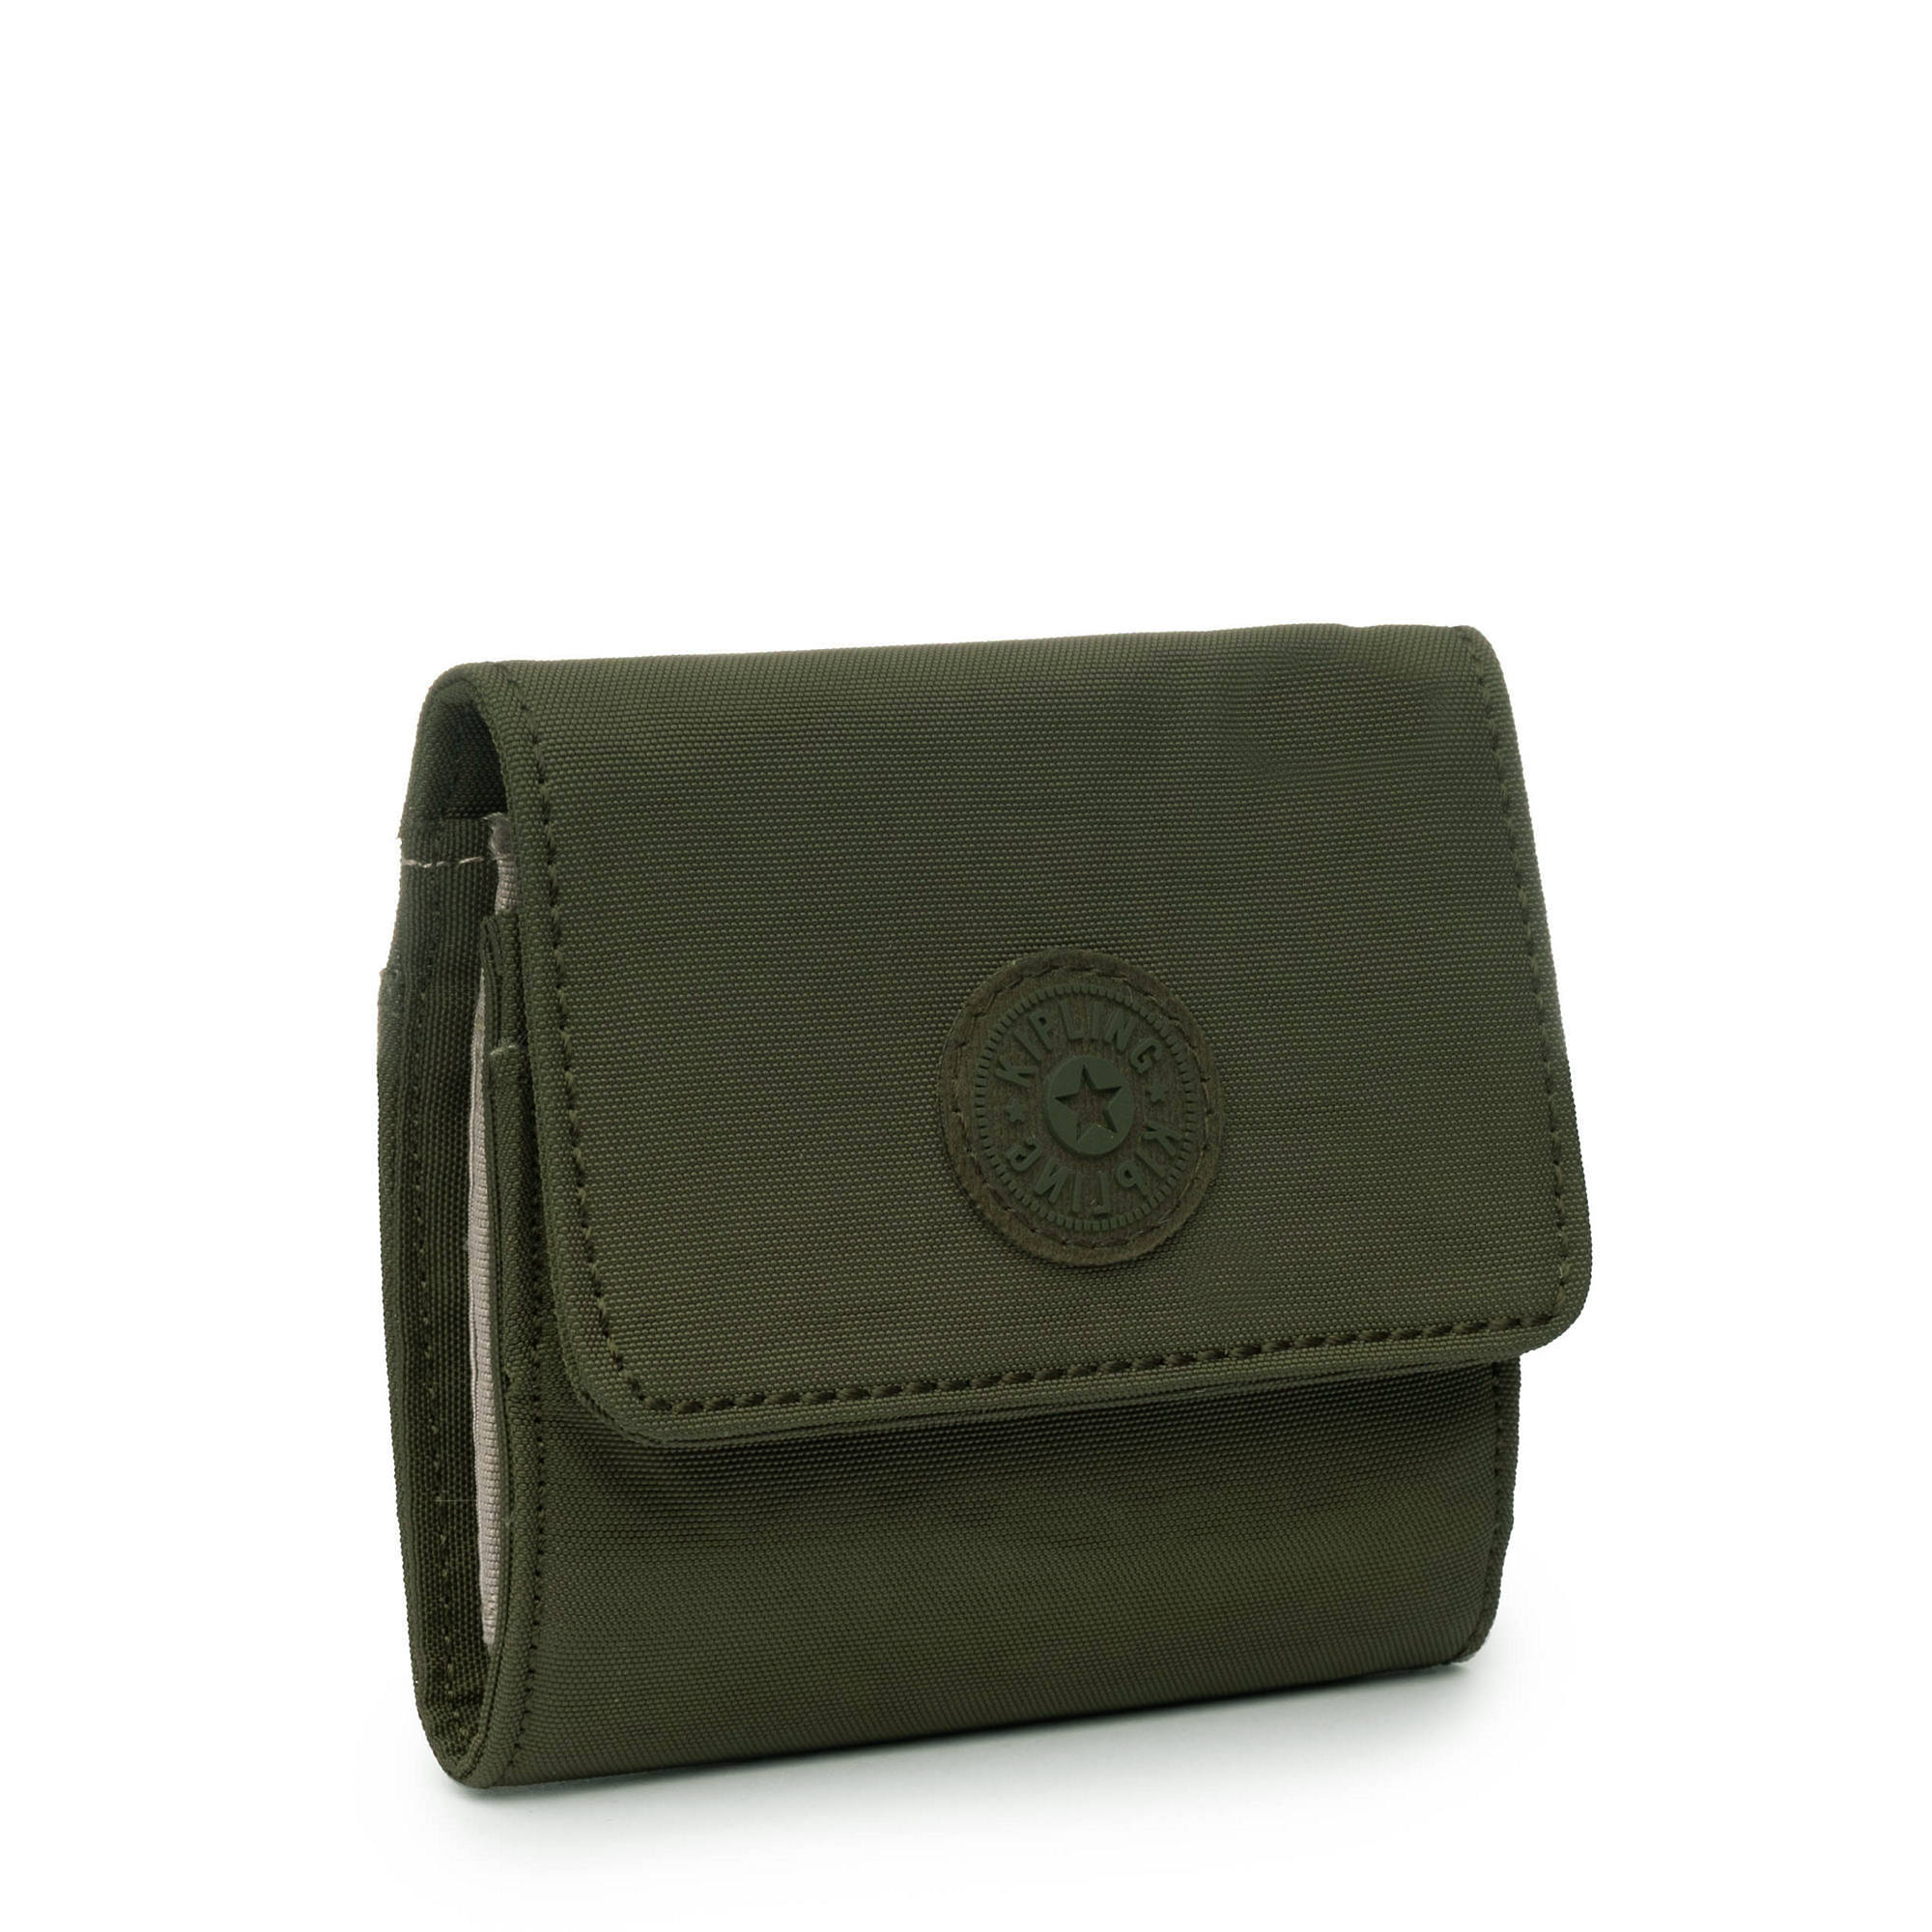 Kipling-Cece-Metallic-Small-Wallet thumbnail 11